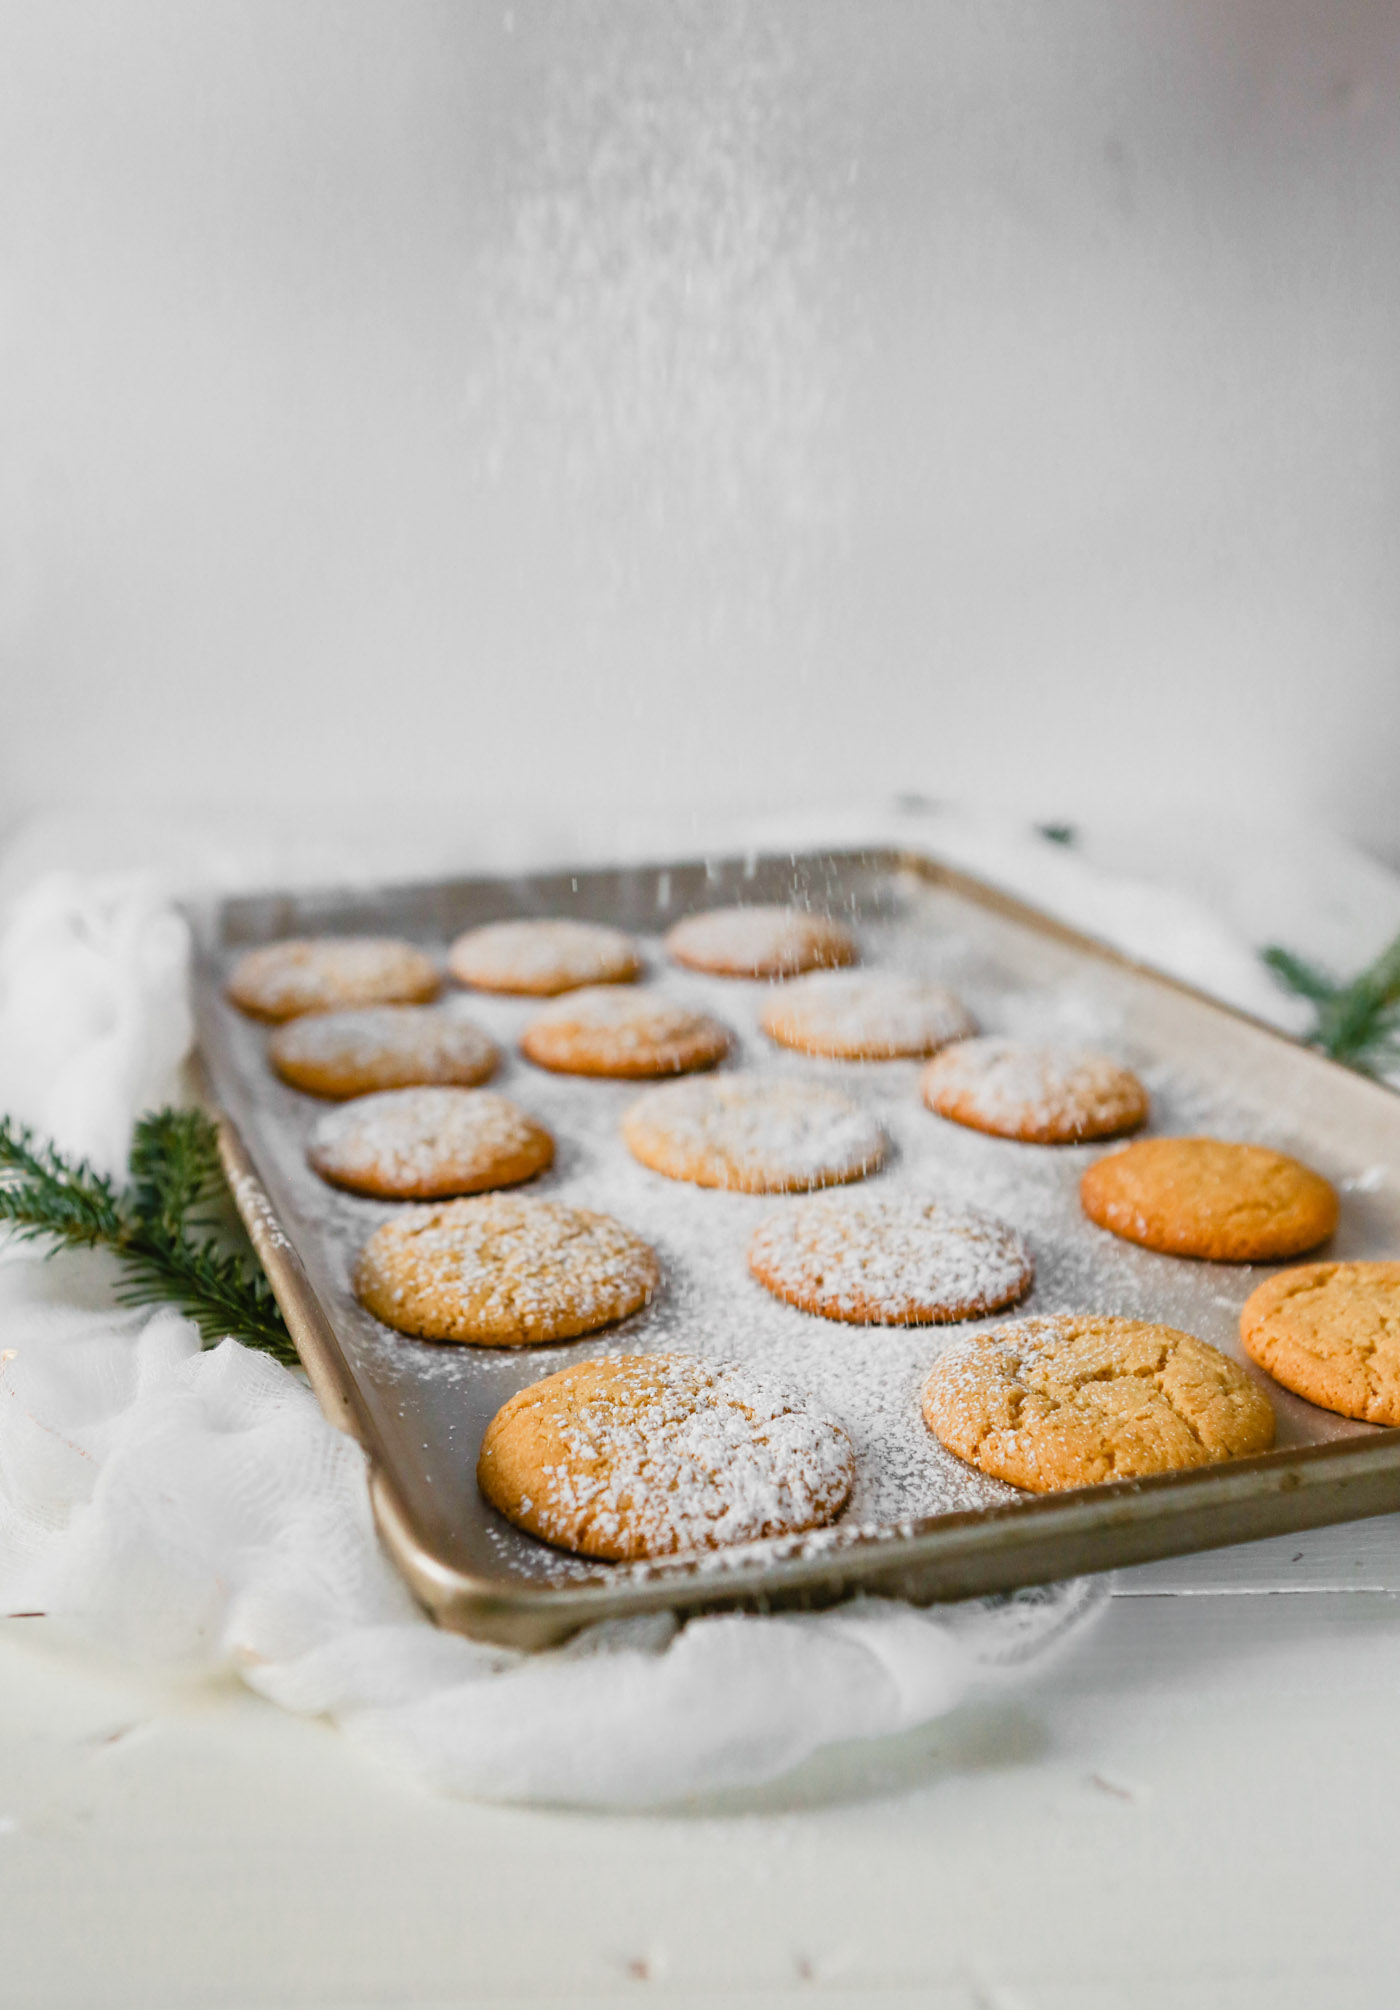 Photograph of eggnog cookies on a baking sheet getting dusted with powdered sugar